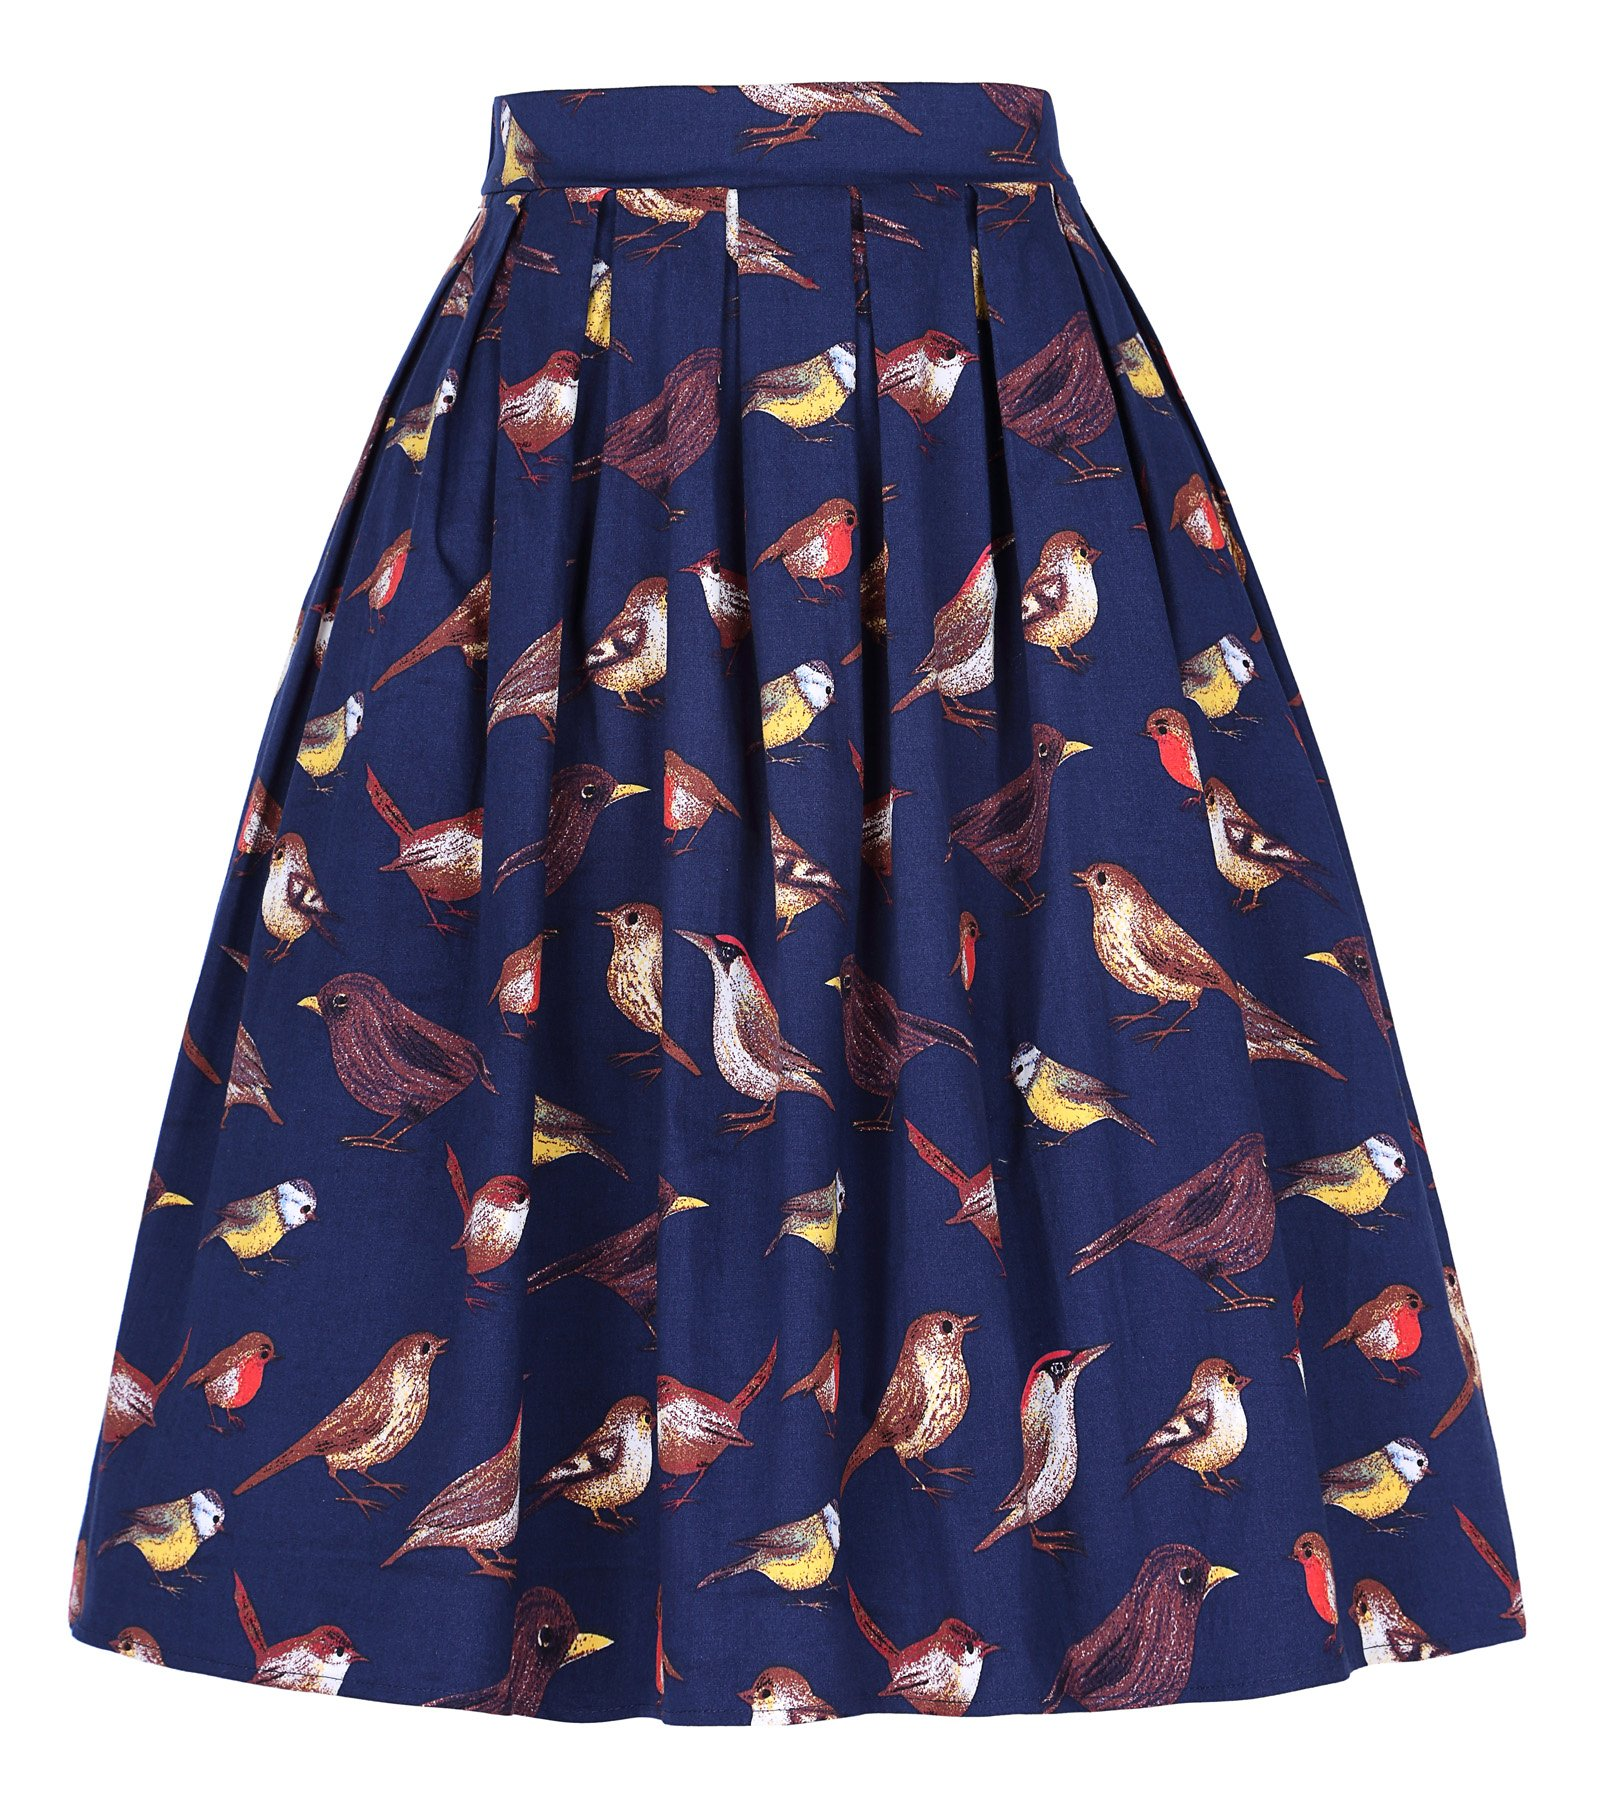 GRACE KARIN Casual High Waisted Floral Swing Skirt Party Knee Length Size 3XL CL010401-5